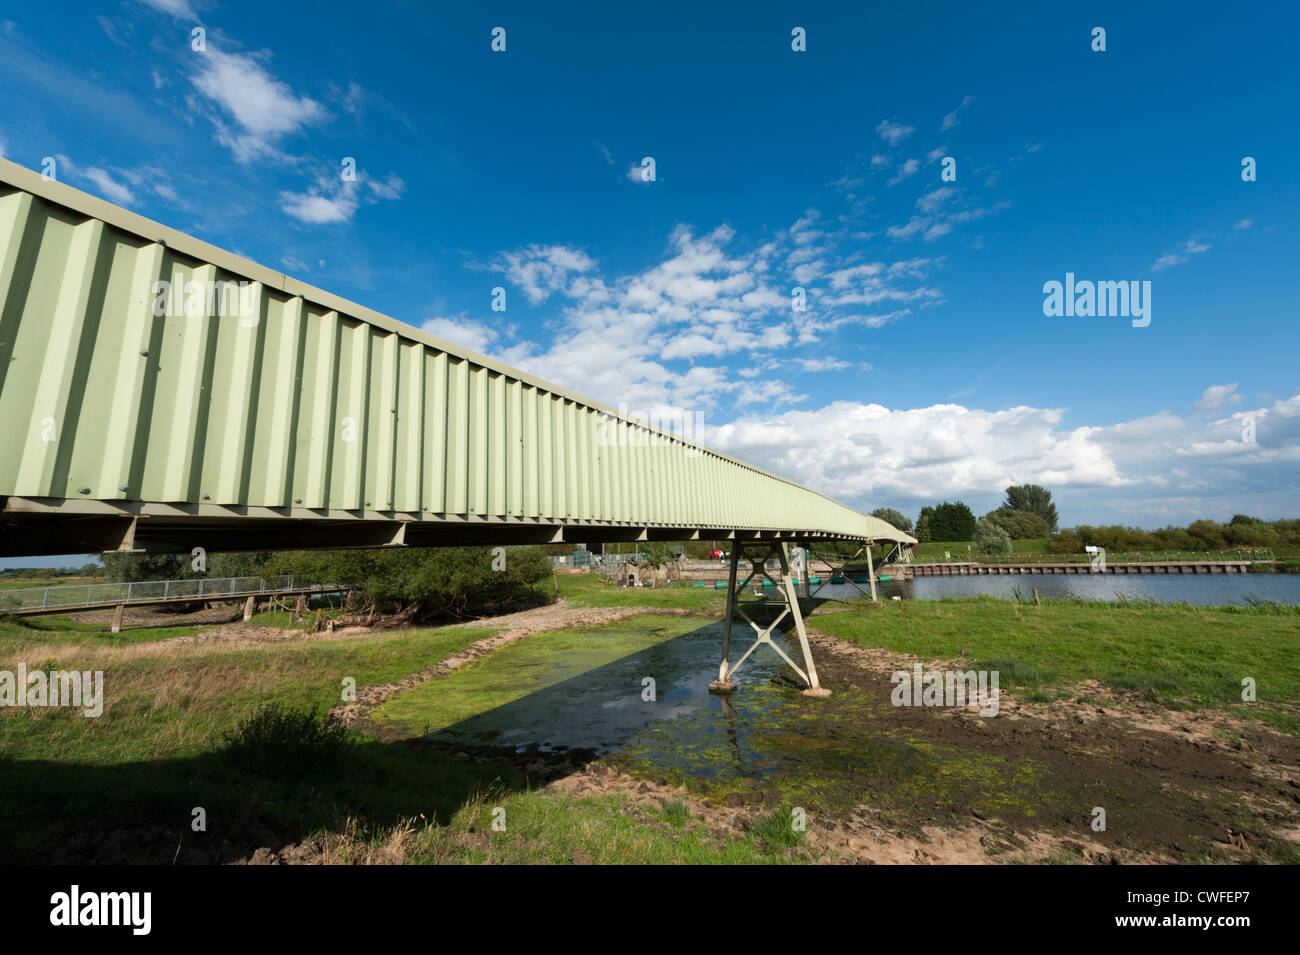 Gravel conveyor belt machinery at the River Great Ouse Cambridgeshire UK - Stock Image